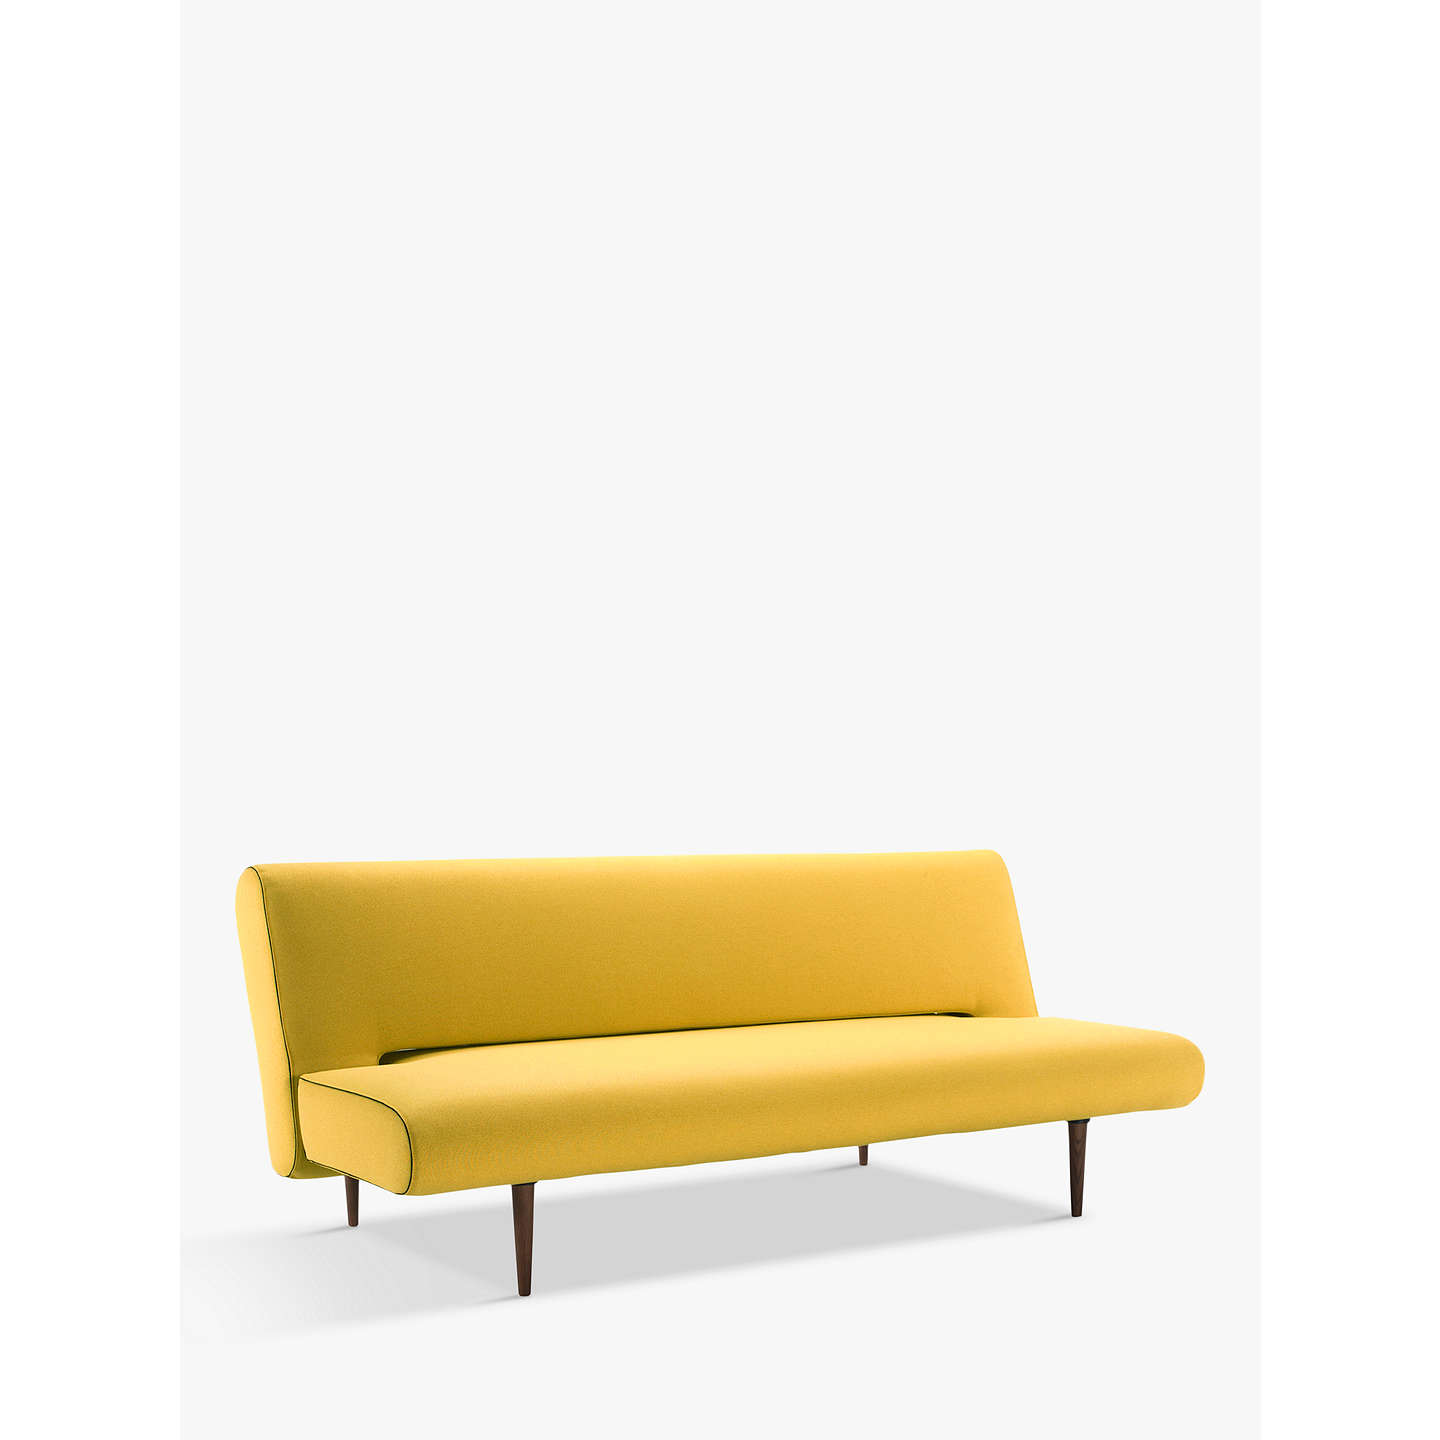 BuyInnovation Unfurl Sofa Bed with Pocket Sprung Mattress, Dark Leg, Mustard Flower Online at johnlewis.com